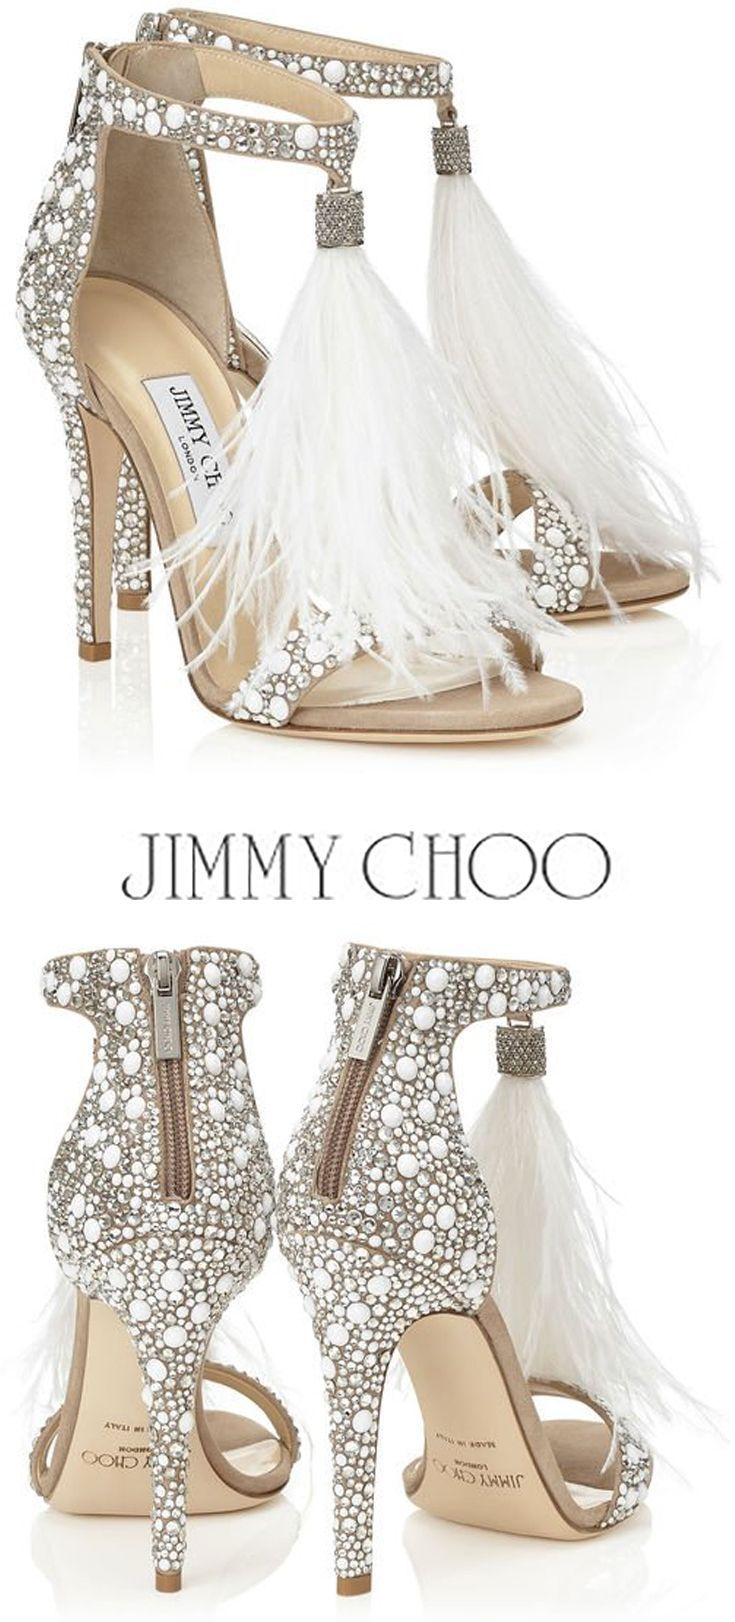 b8ca92d200d JIMMY CHOO VIOLA 110 White Suede and Hot Fix Crystal Embellished Sandals  with an Ostrich Feather Tassel  shoes  heels  ad  sandals  jimmychoo  tassel